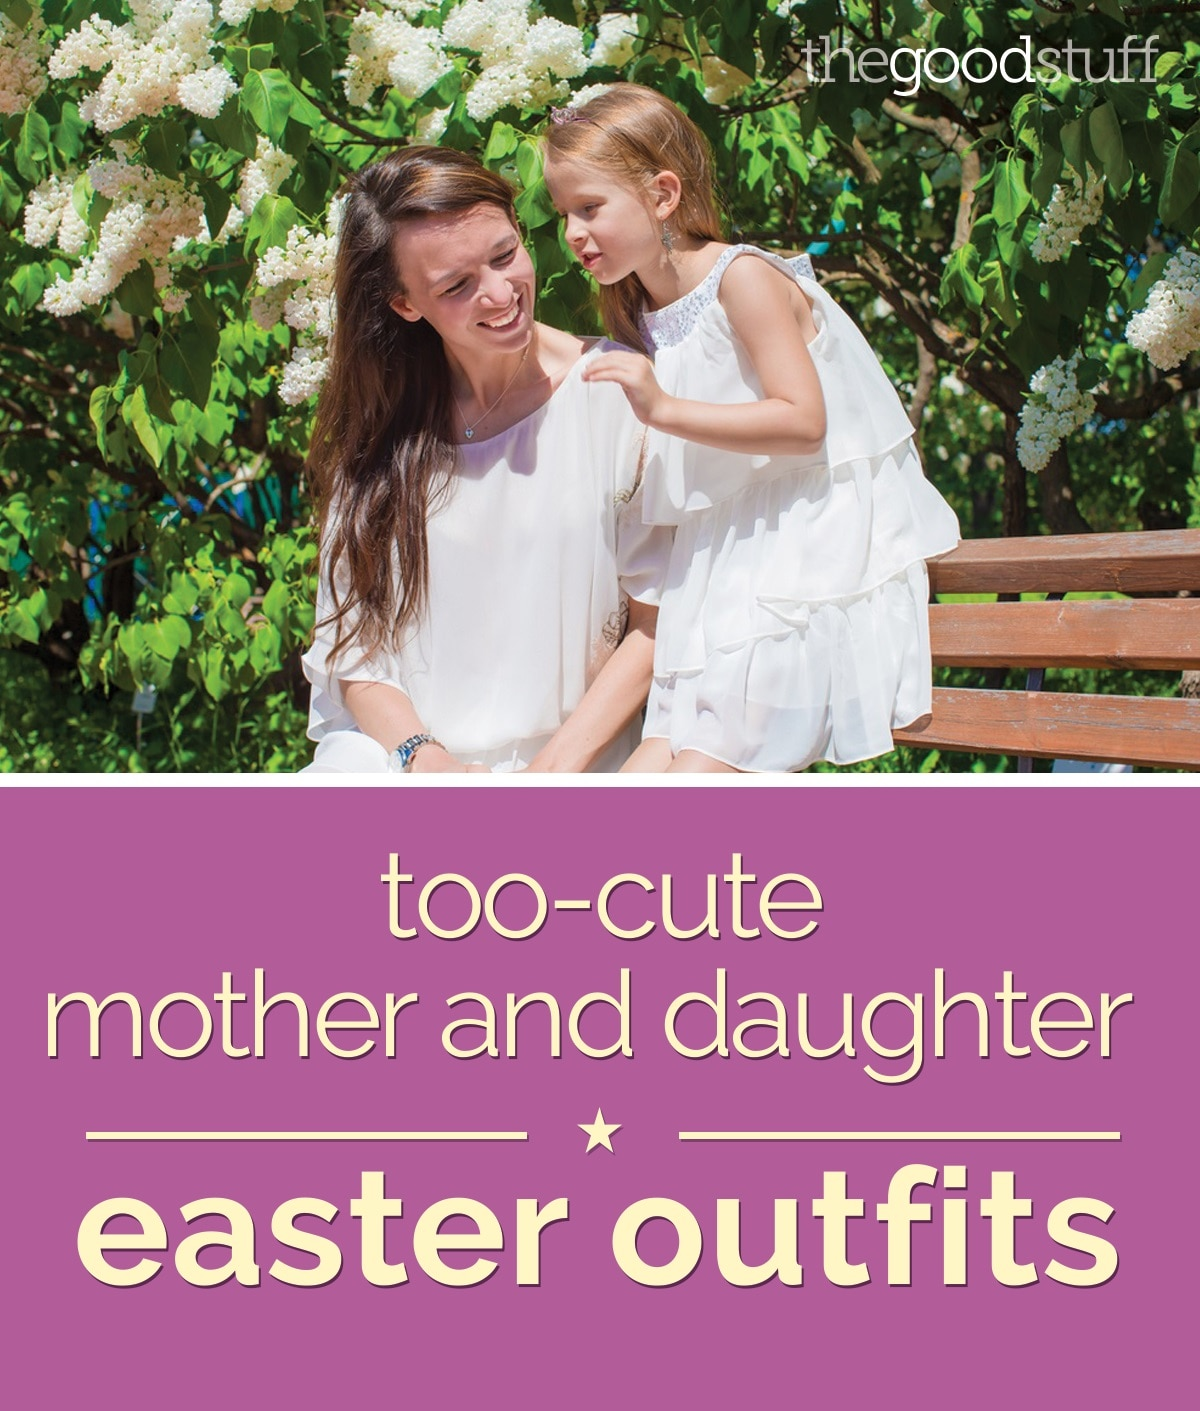 cc67feafcd Too-Cute Mother and Daughter Easter Outfits - thegoodstuff